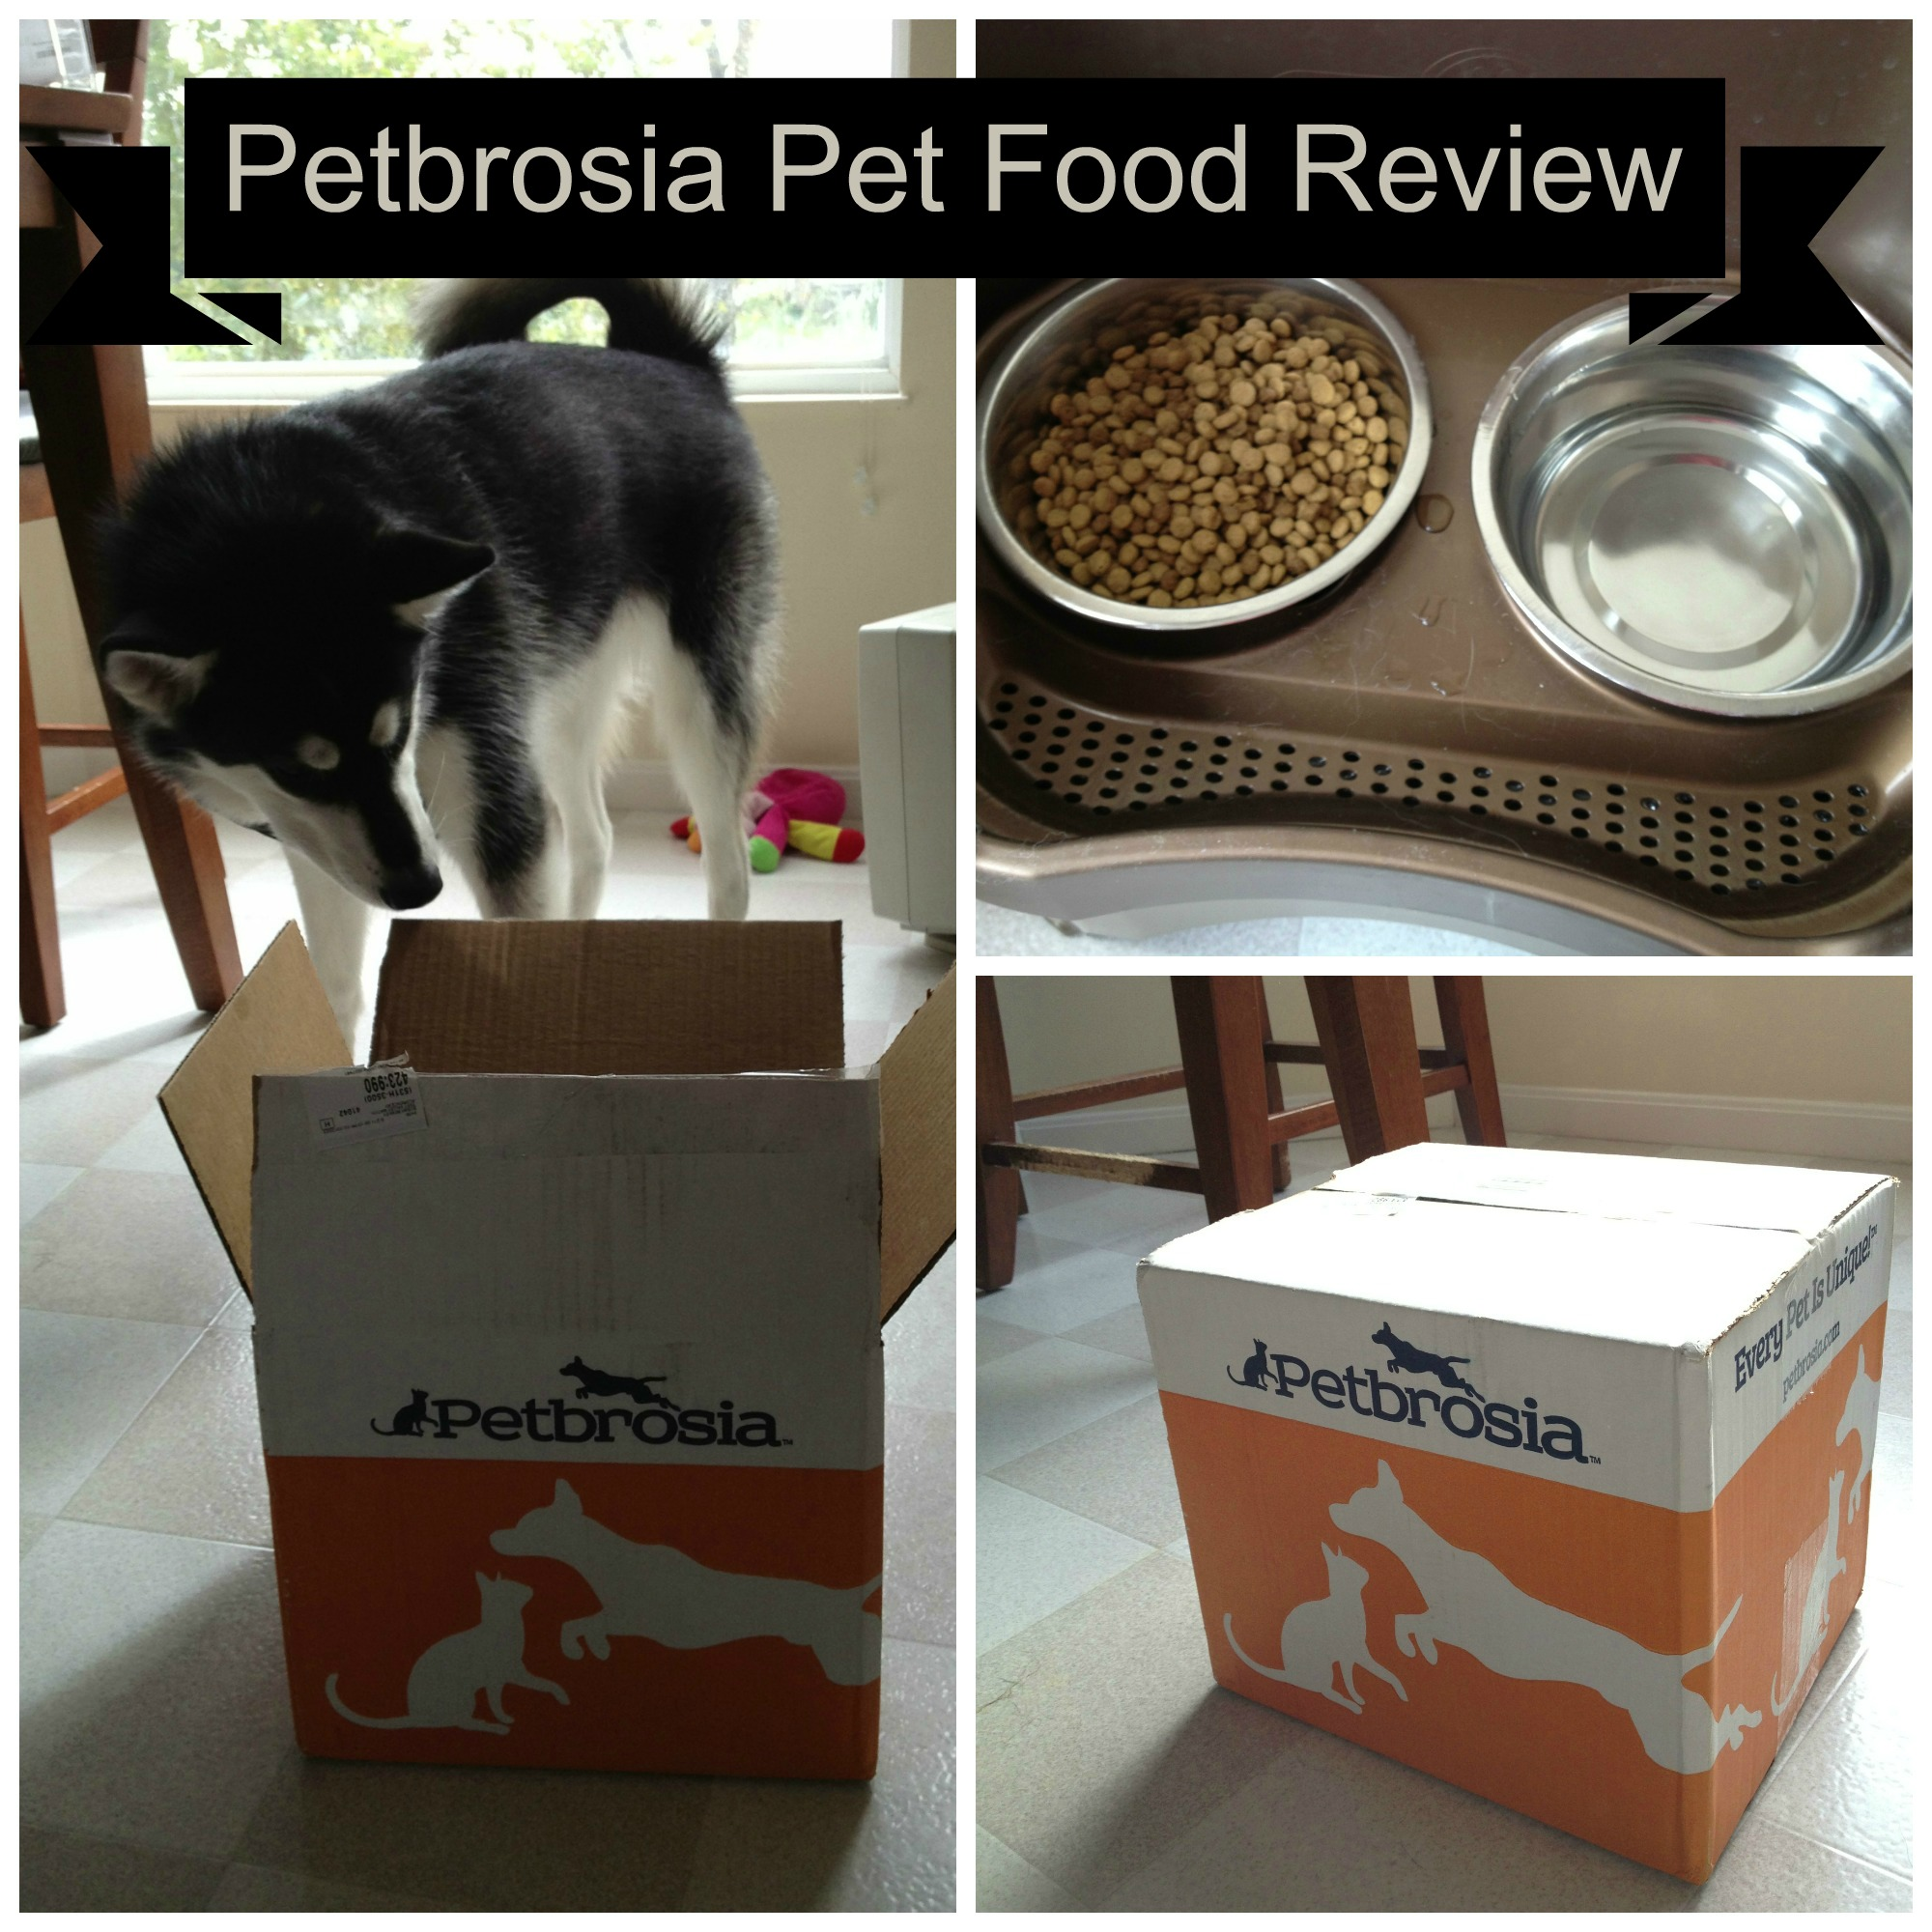 Petbrosia Review: Healthy Food for Every Dog